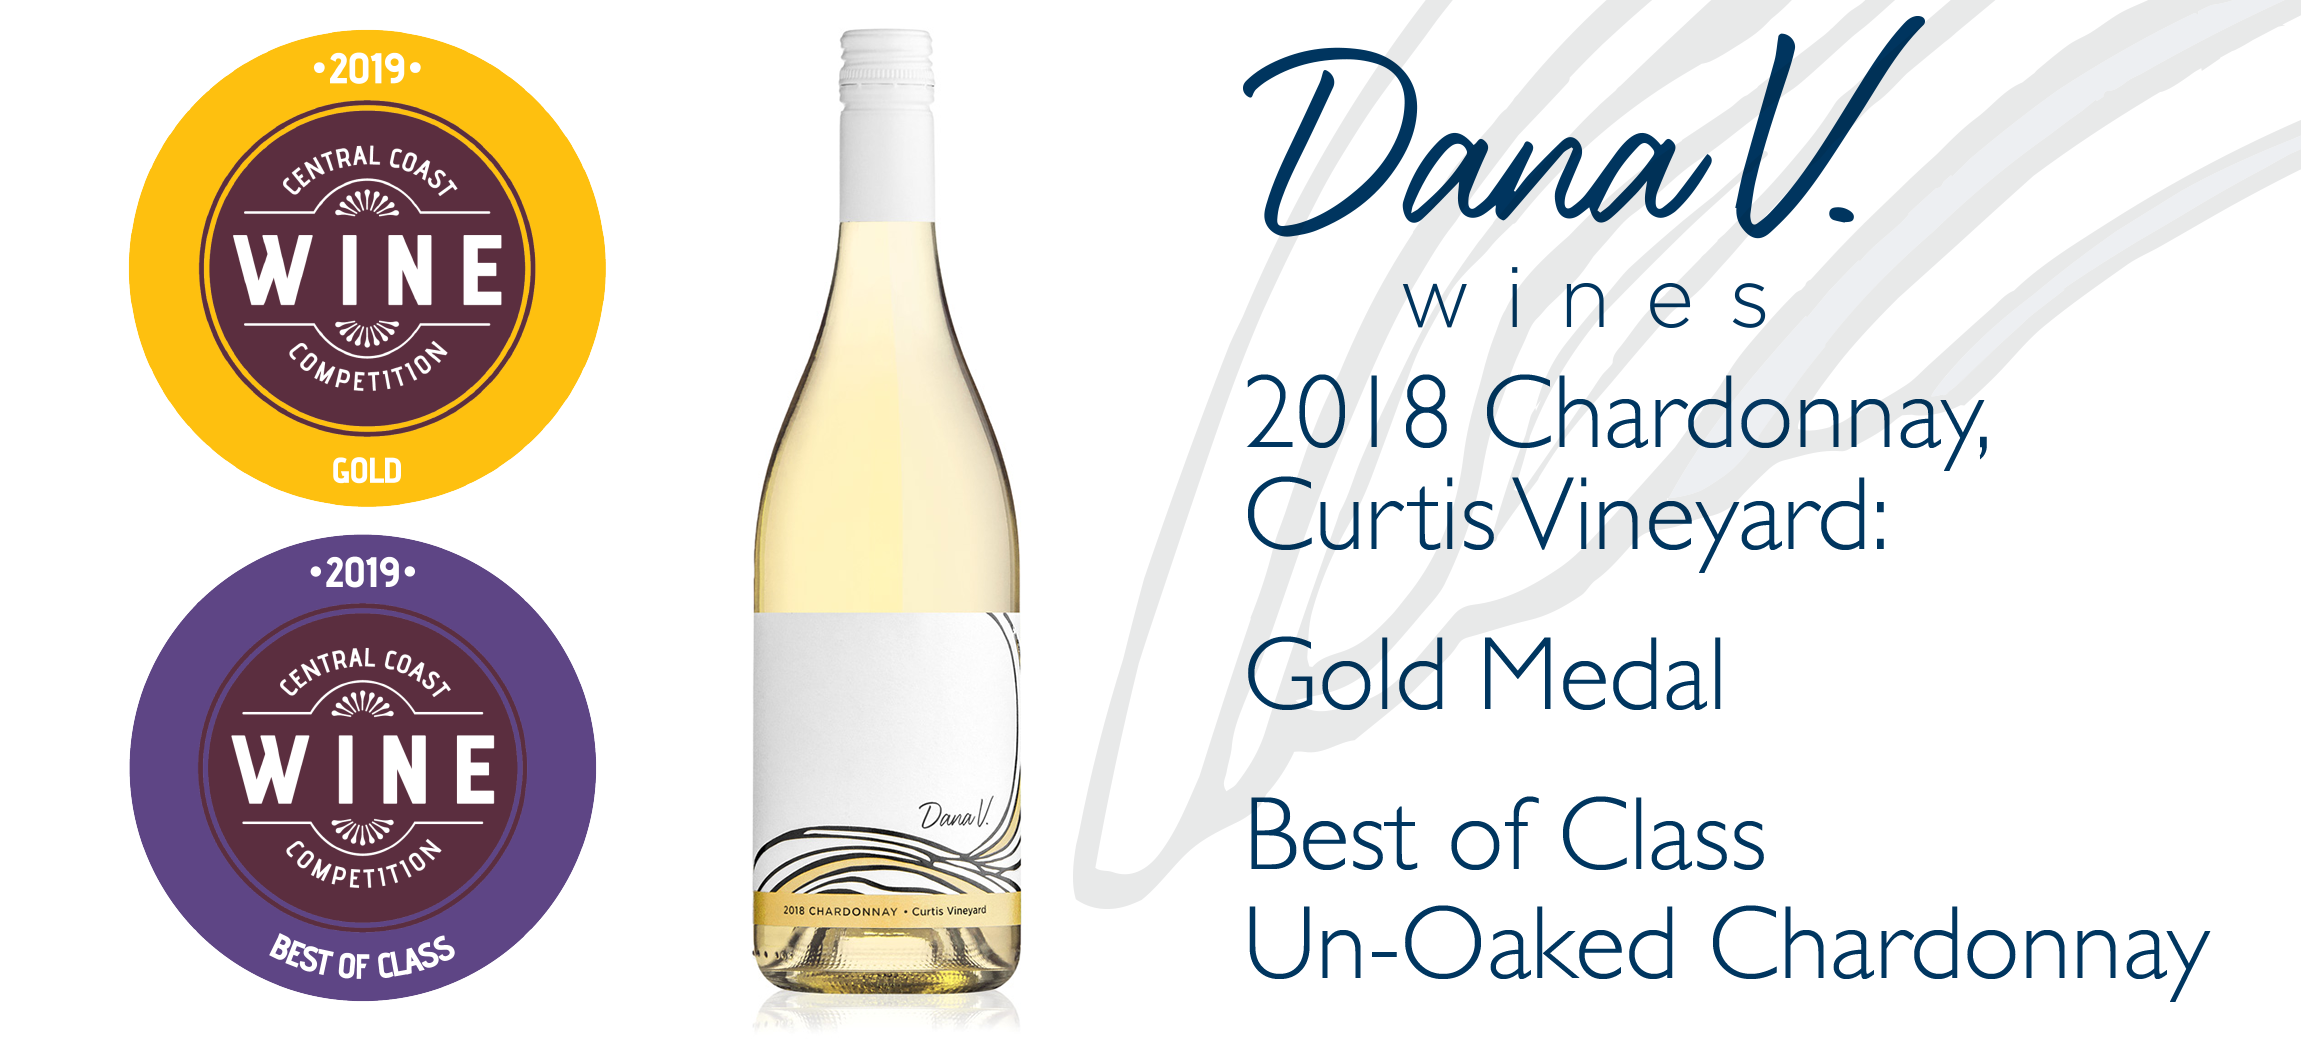 2018 Chardonnay won the gold medal and best of class for un-oaked Charddonay in the 2019 central coast wine competition